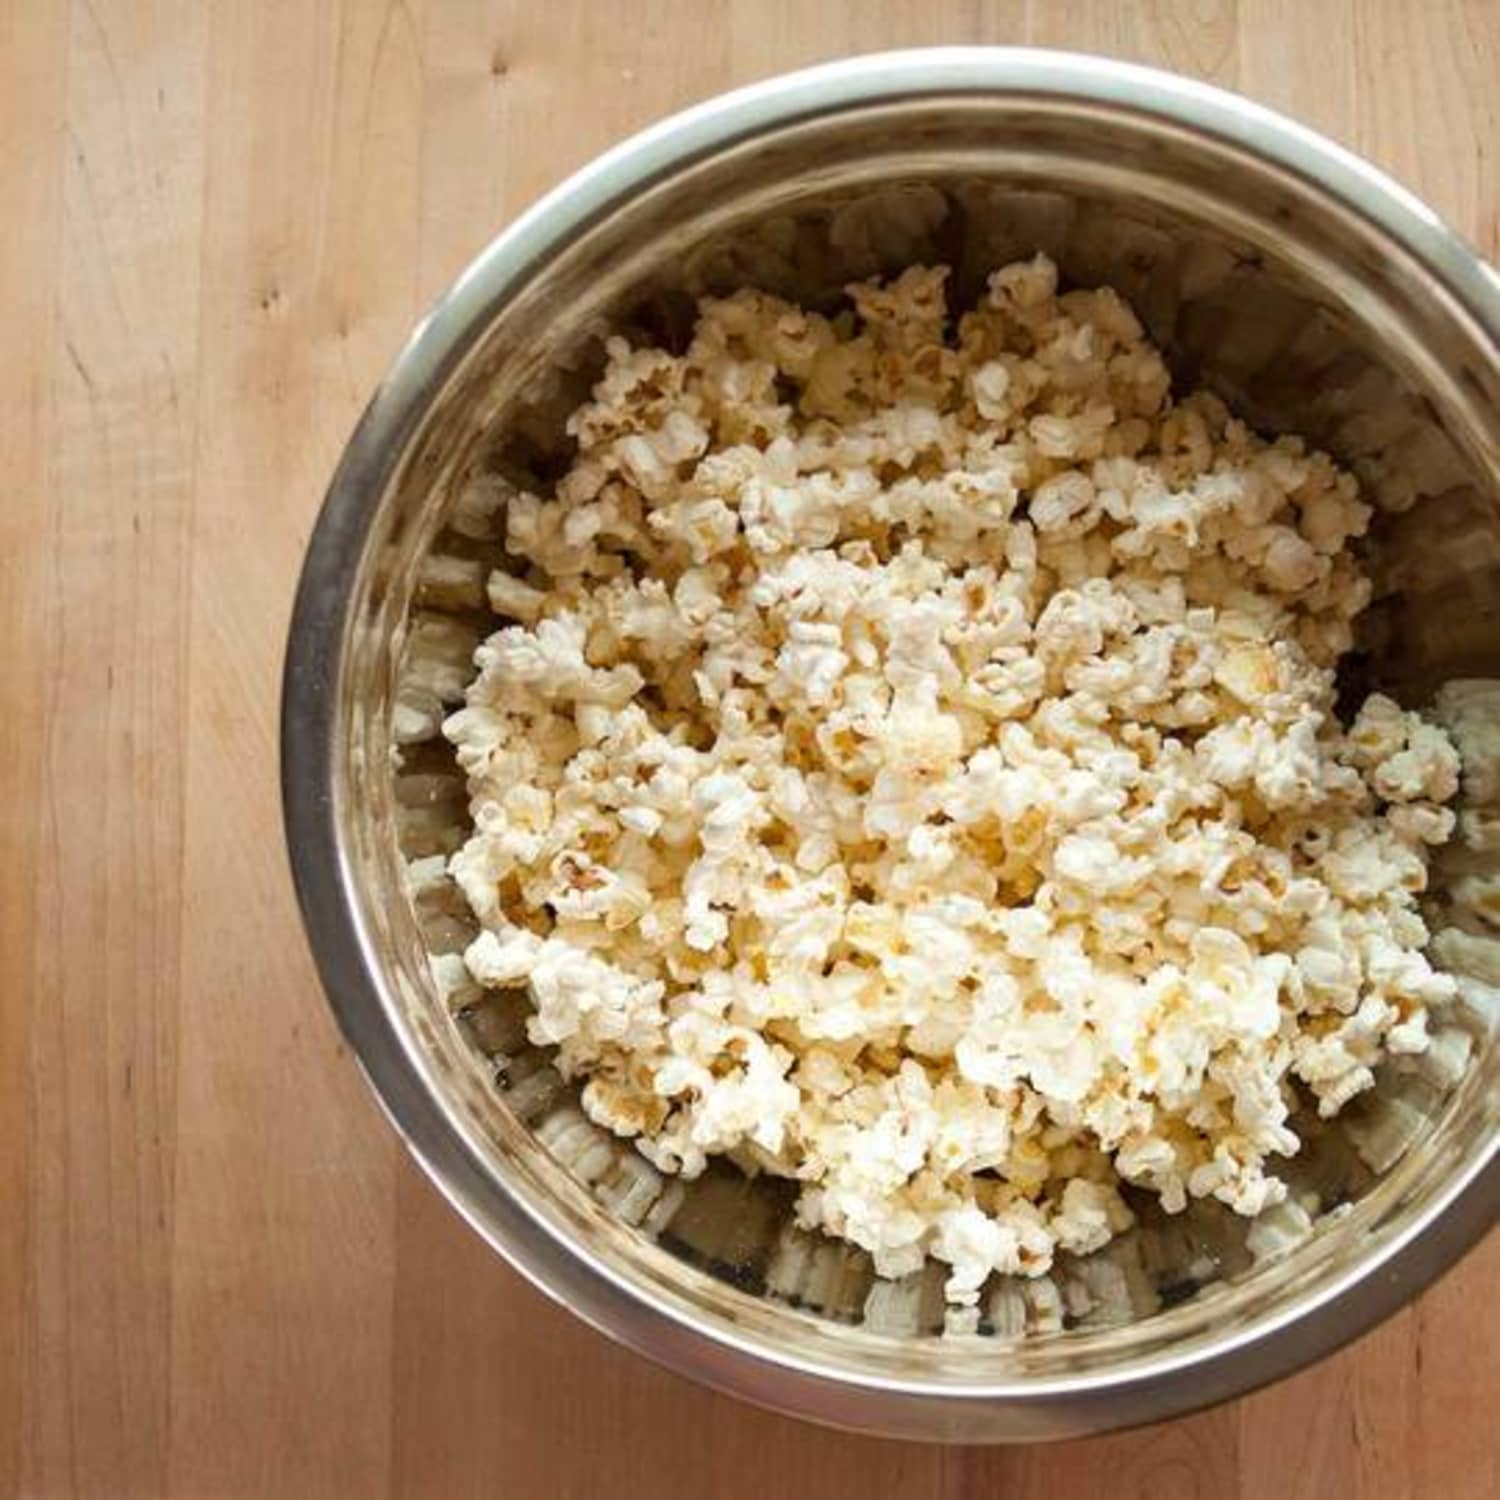 Alton Brown's Trick for Perfect Stovetop Popcorn